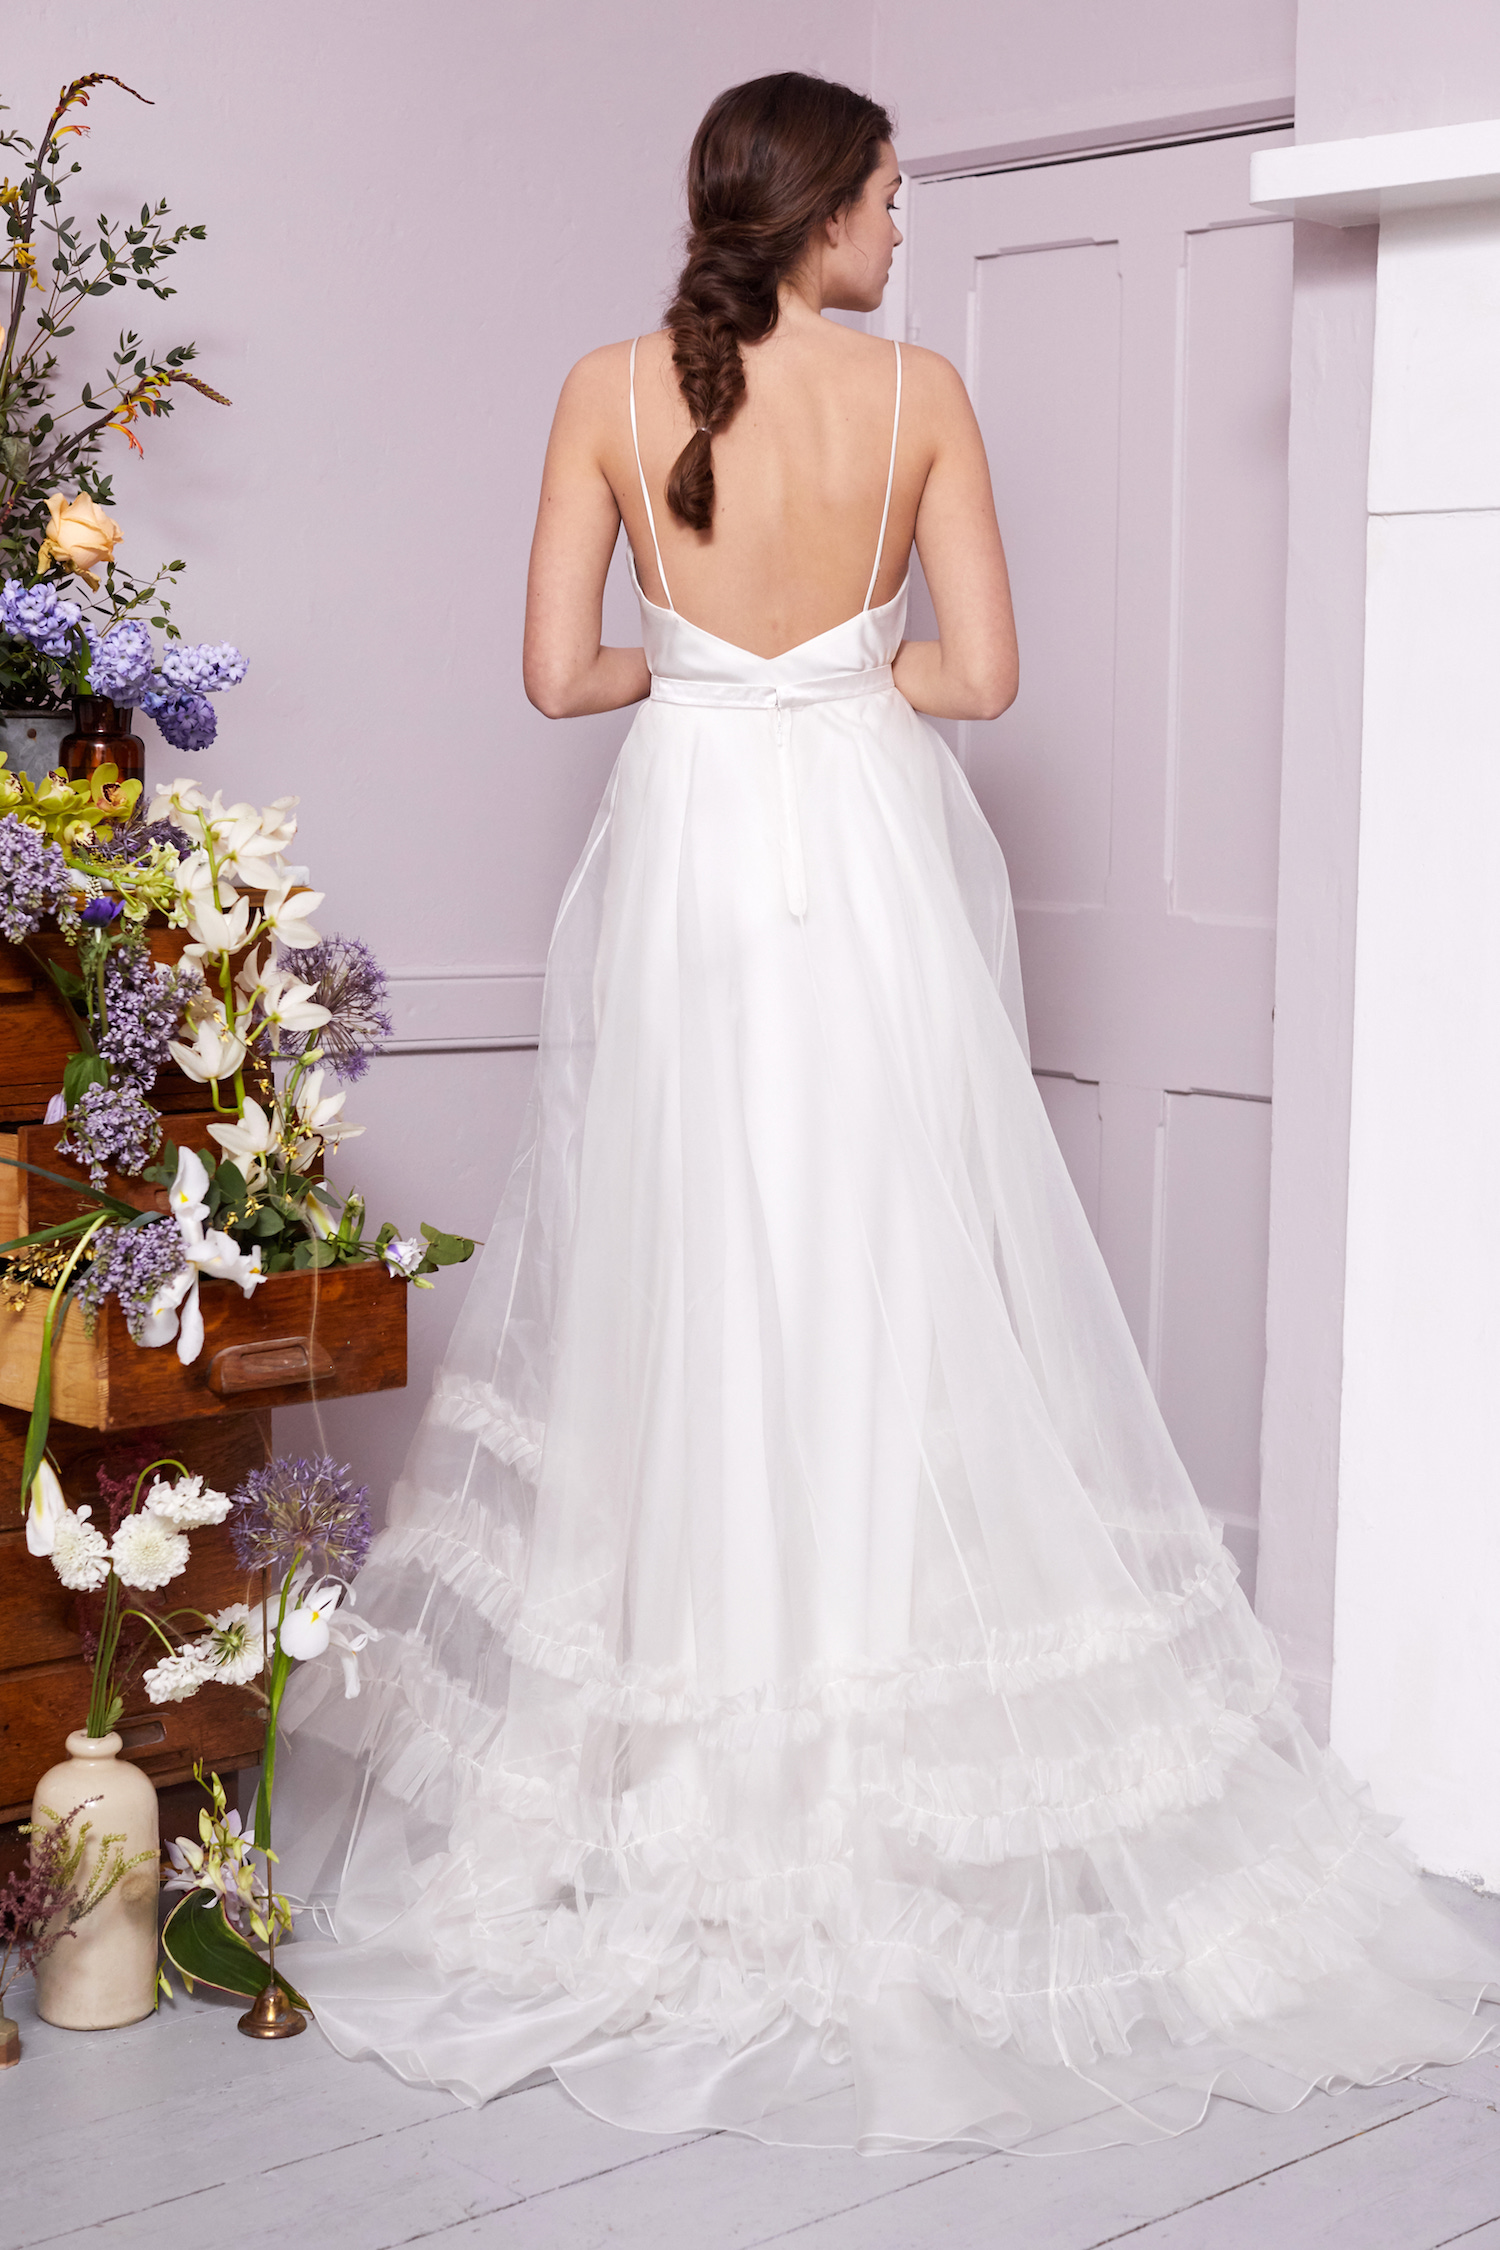 MAYFAIR SKIRT & IRIS SLIP | WEDDING DRESS BY HALFPENNY LONDON